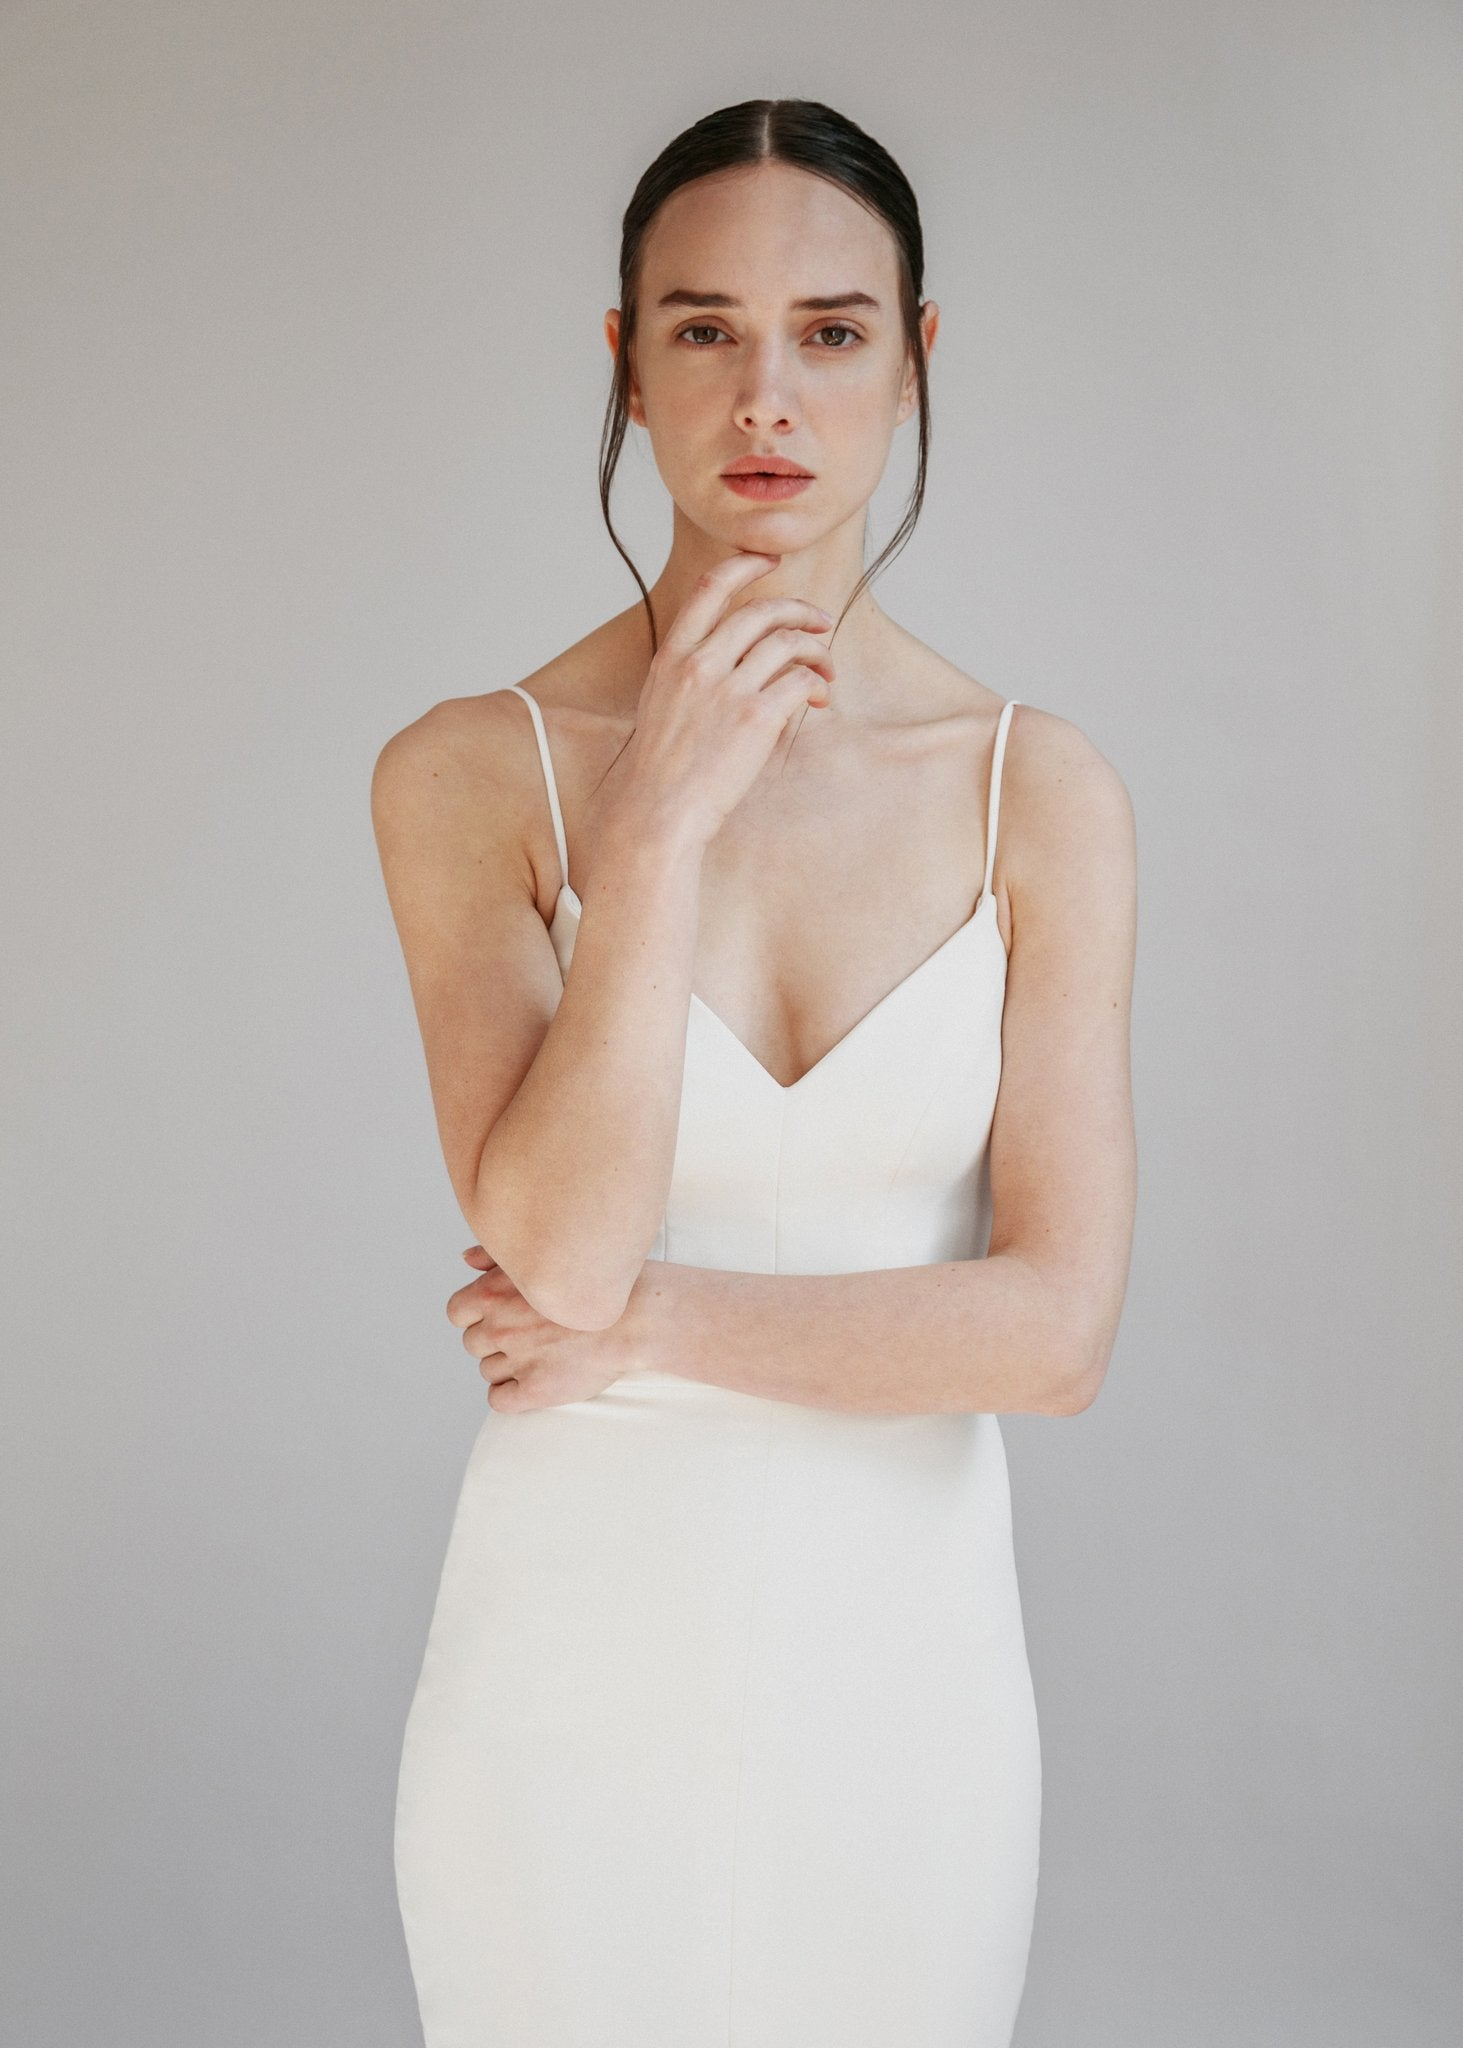 Simple crepe mermaid wedding dress with a low back, spaghetti straps, and a centre slit skirt